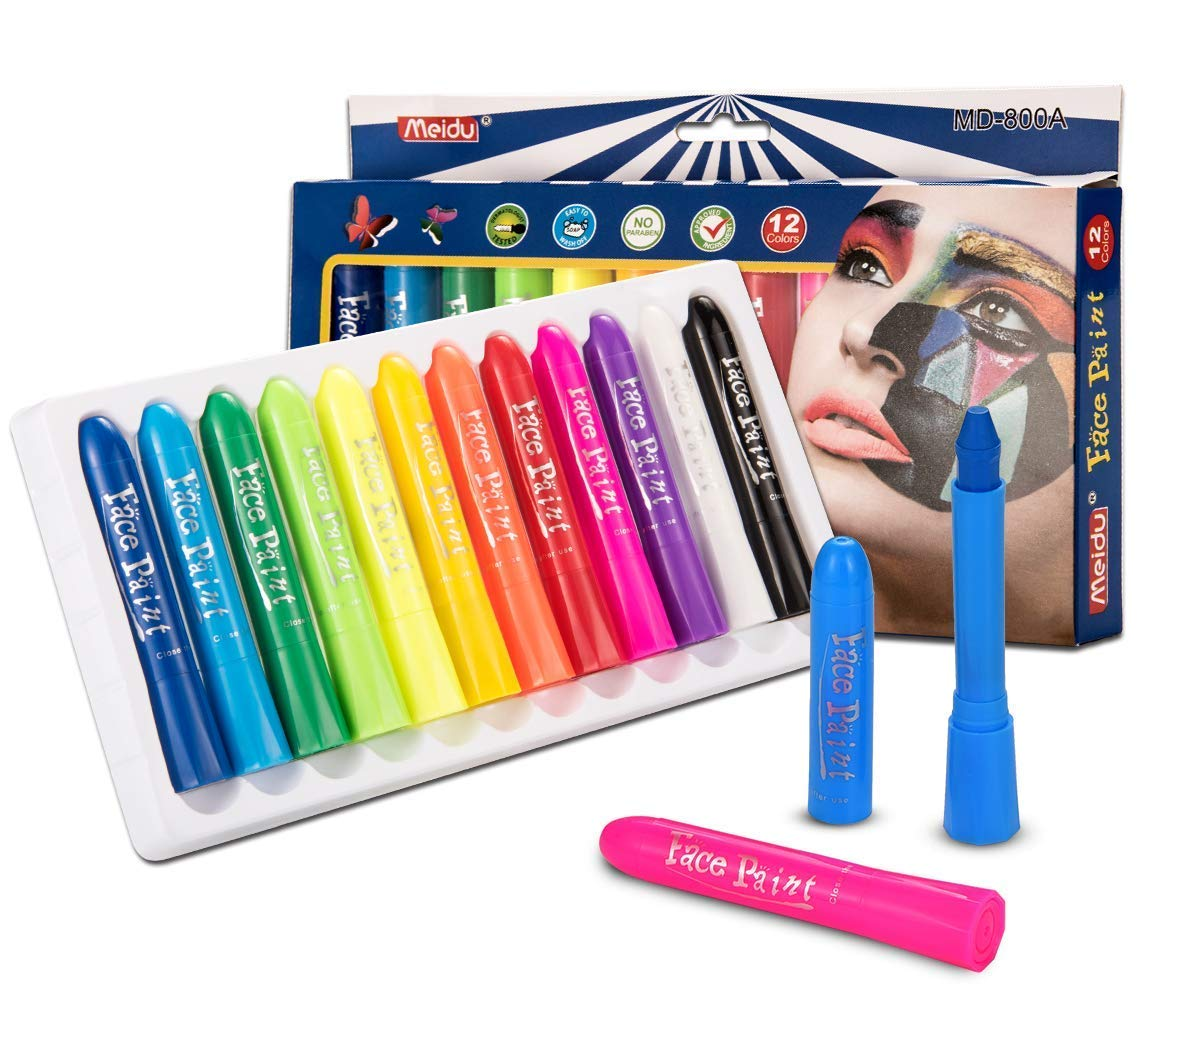 Face Paint with 12 Colors, Yiomxhi Kids Face Painting, Non Toxic Body Paint, Washable Face Paint Crayons, Cosplay Makeup for Halloween, Costumes, Birthday Parties and Parade